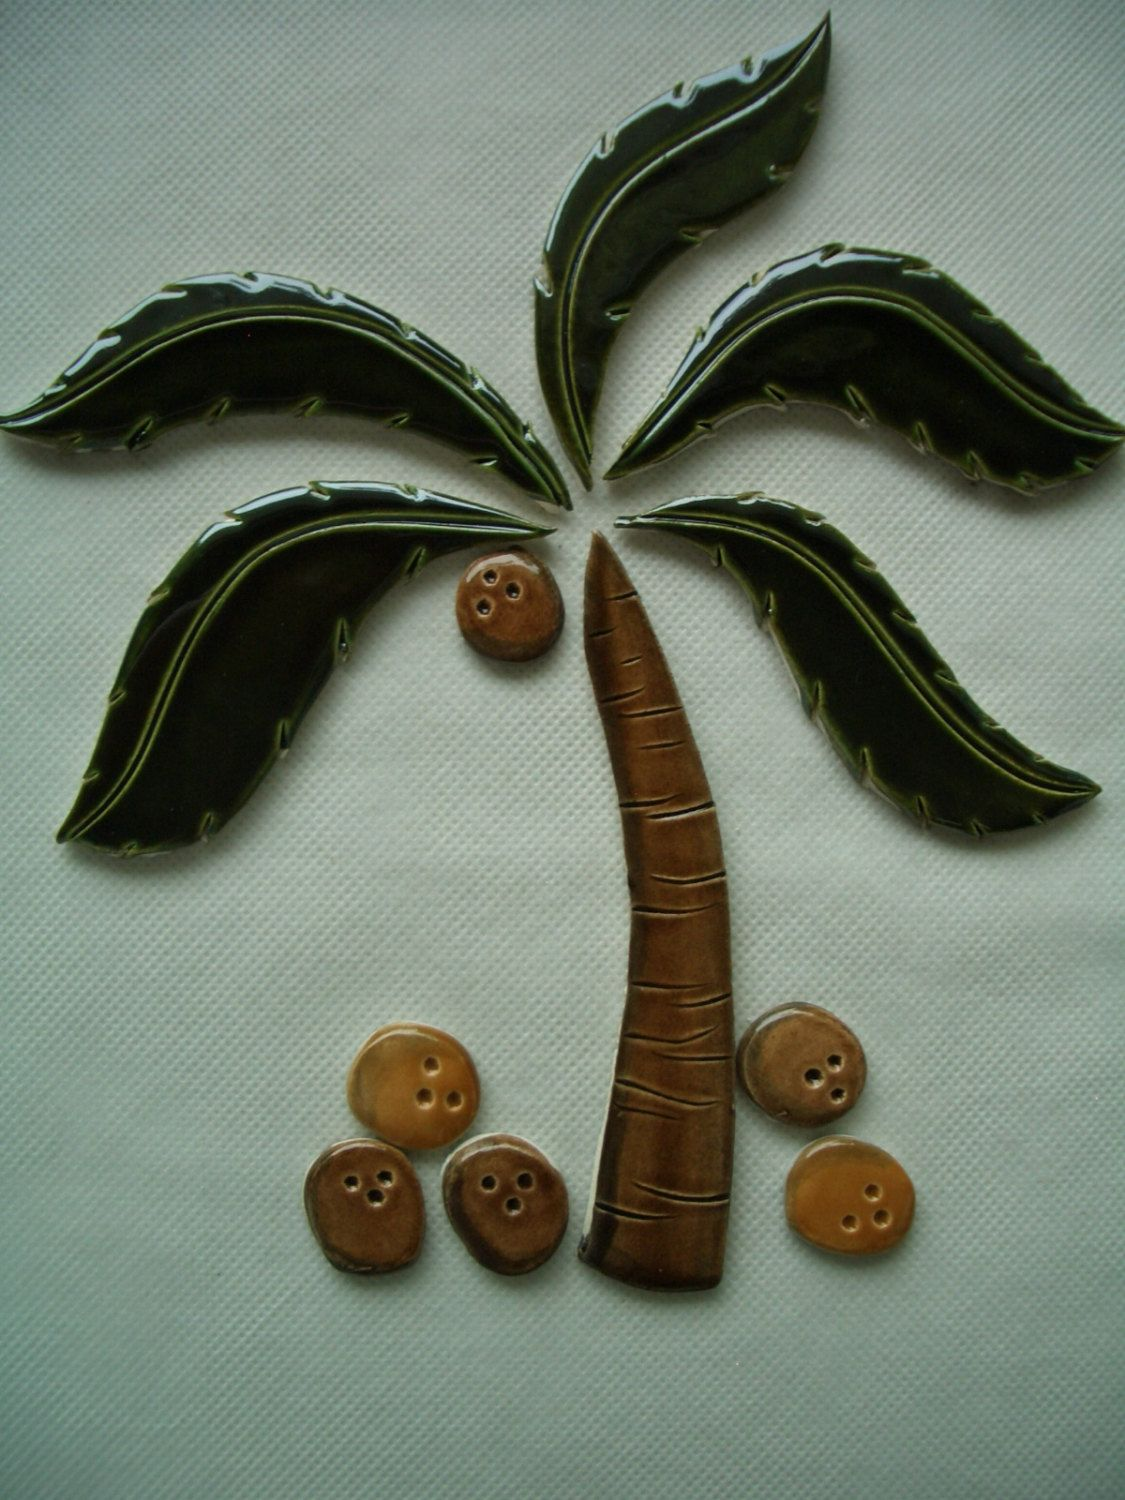 Two Palm Tree Coconuts Ceramic Mosaic Tile Set By Tinkertiles On Etsy